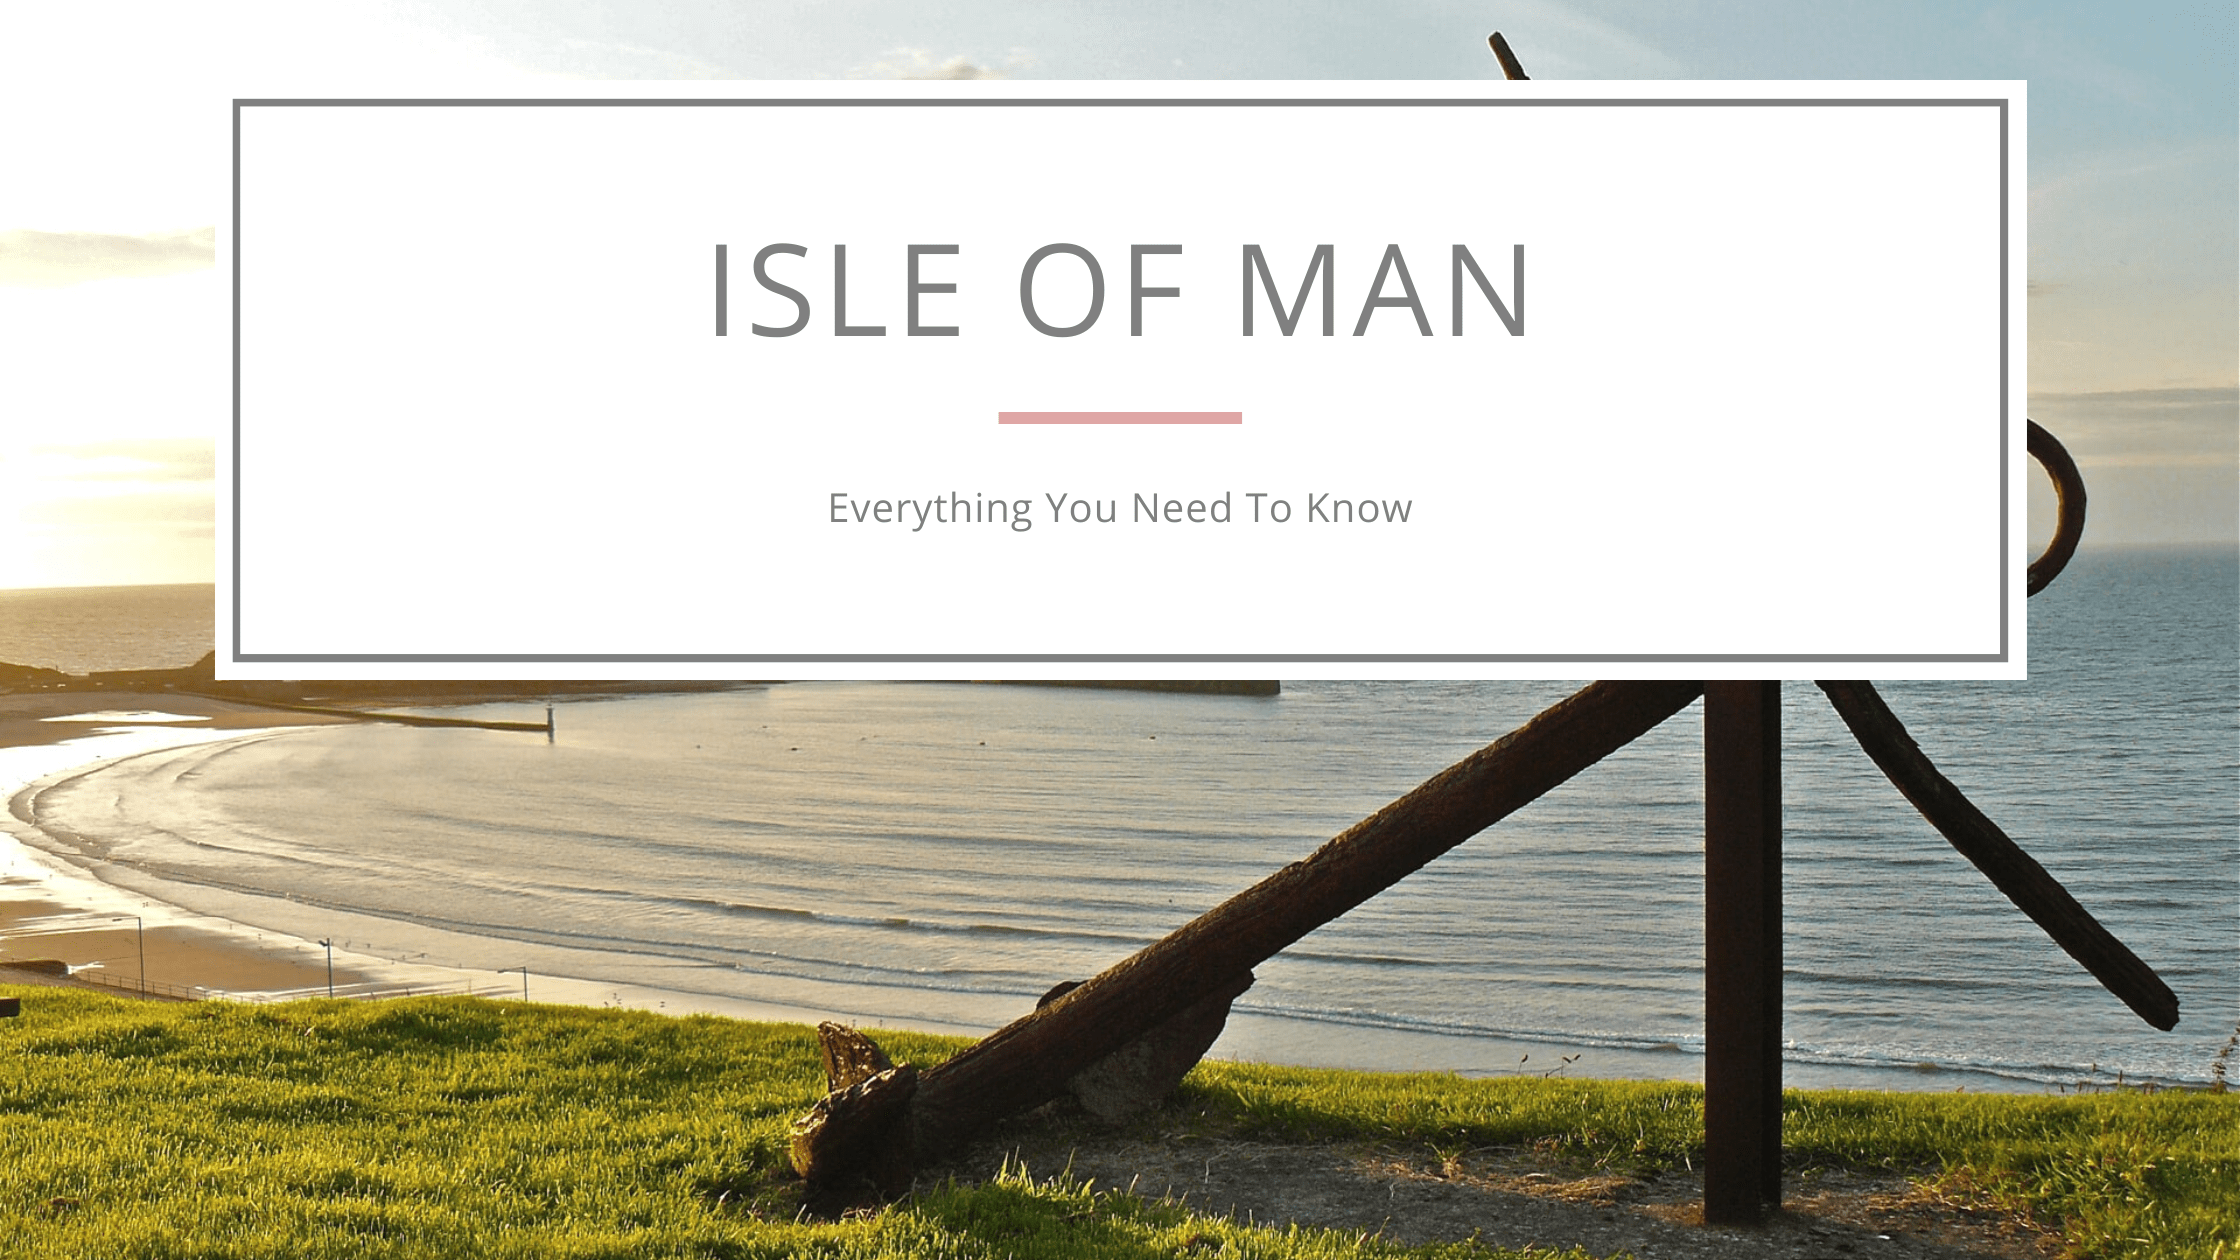 Isle of Man - Everything You Need to Know